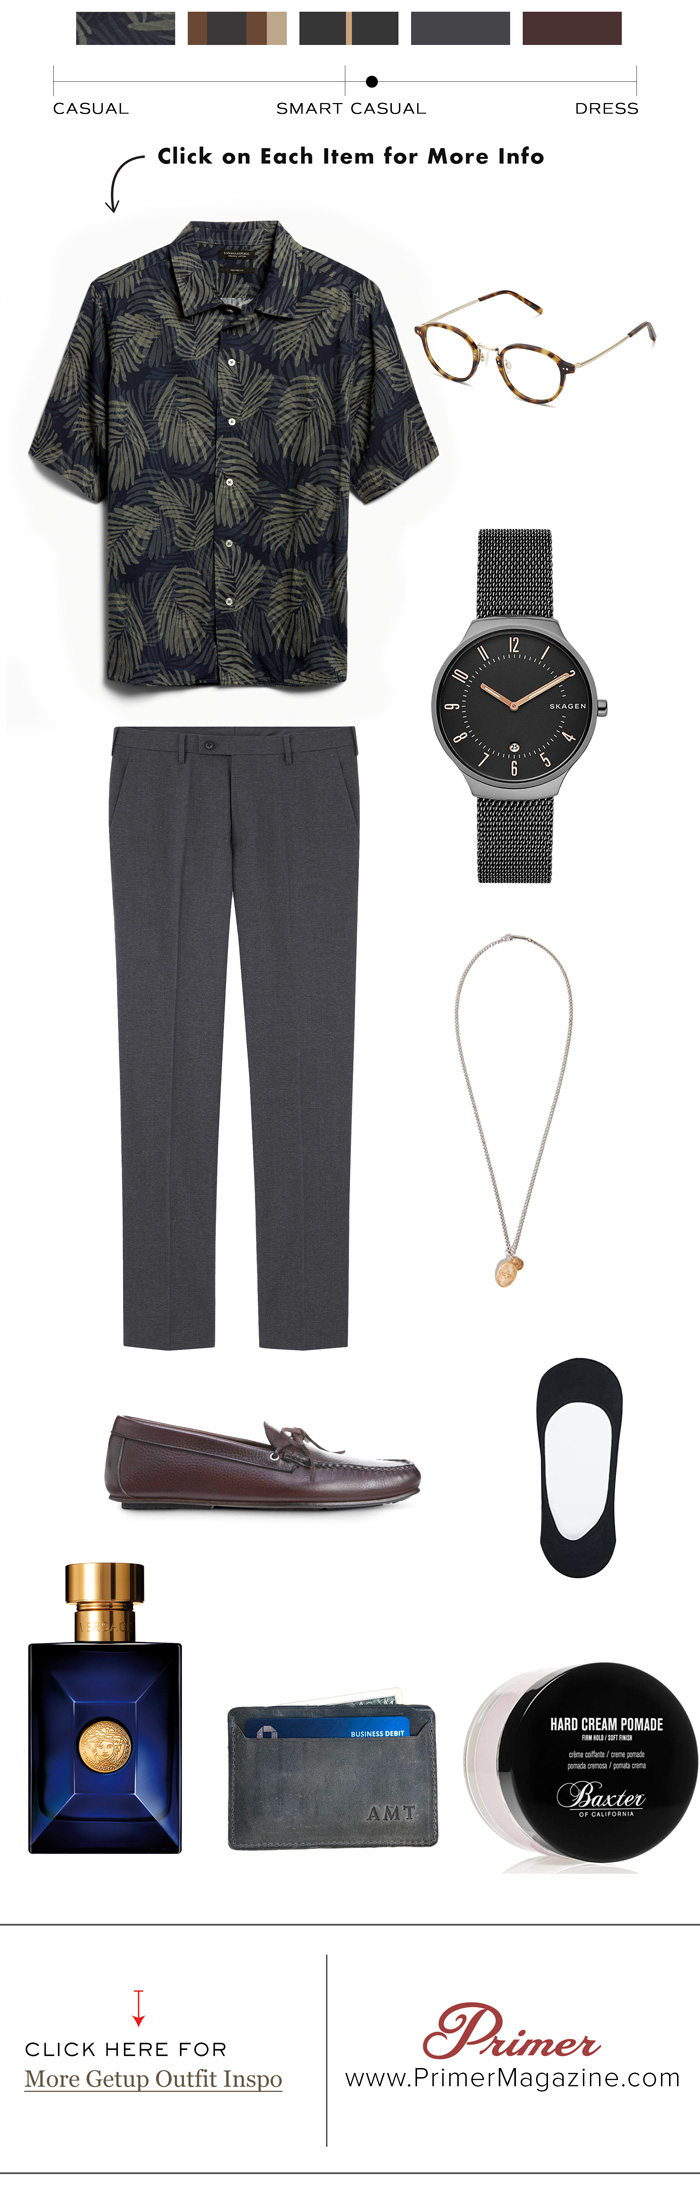 summer evening getup outfit from primer magazine